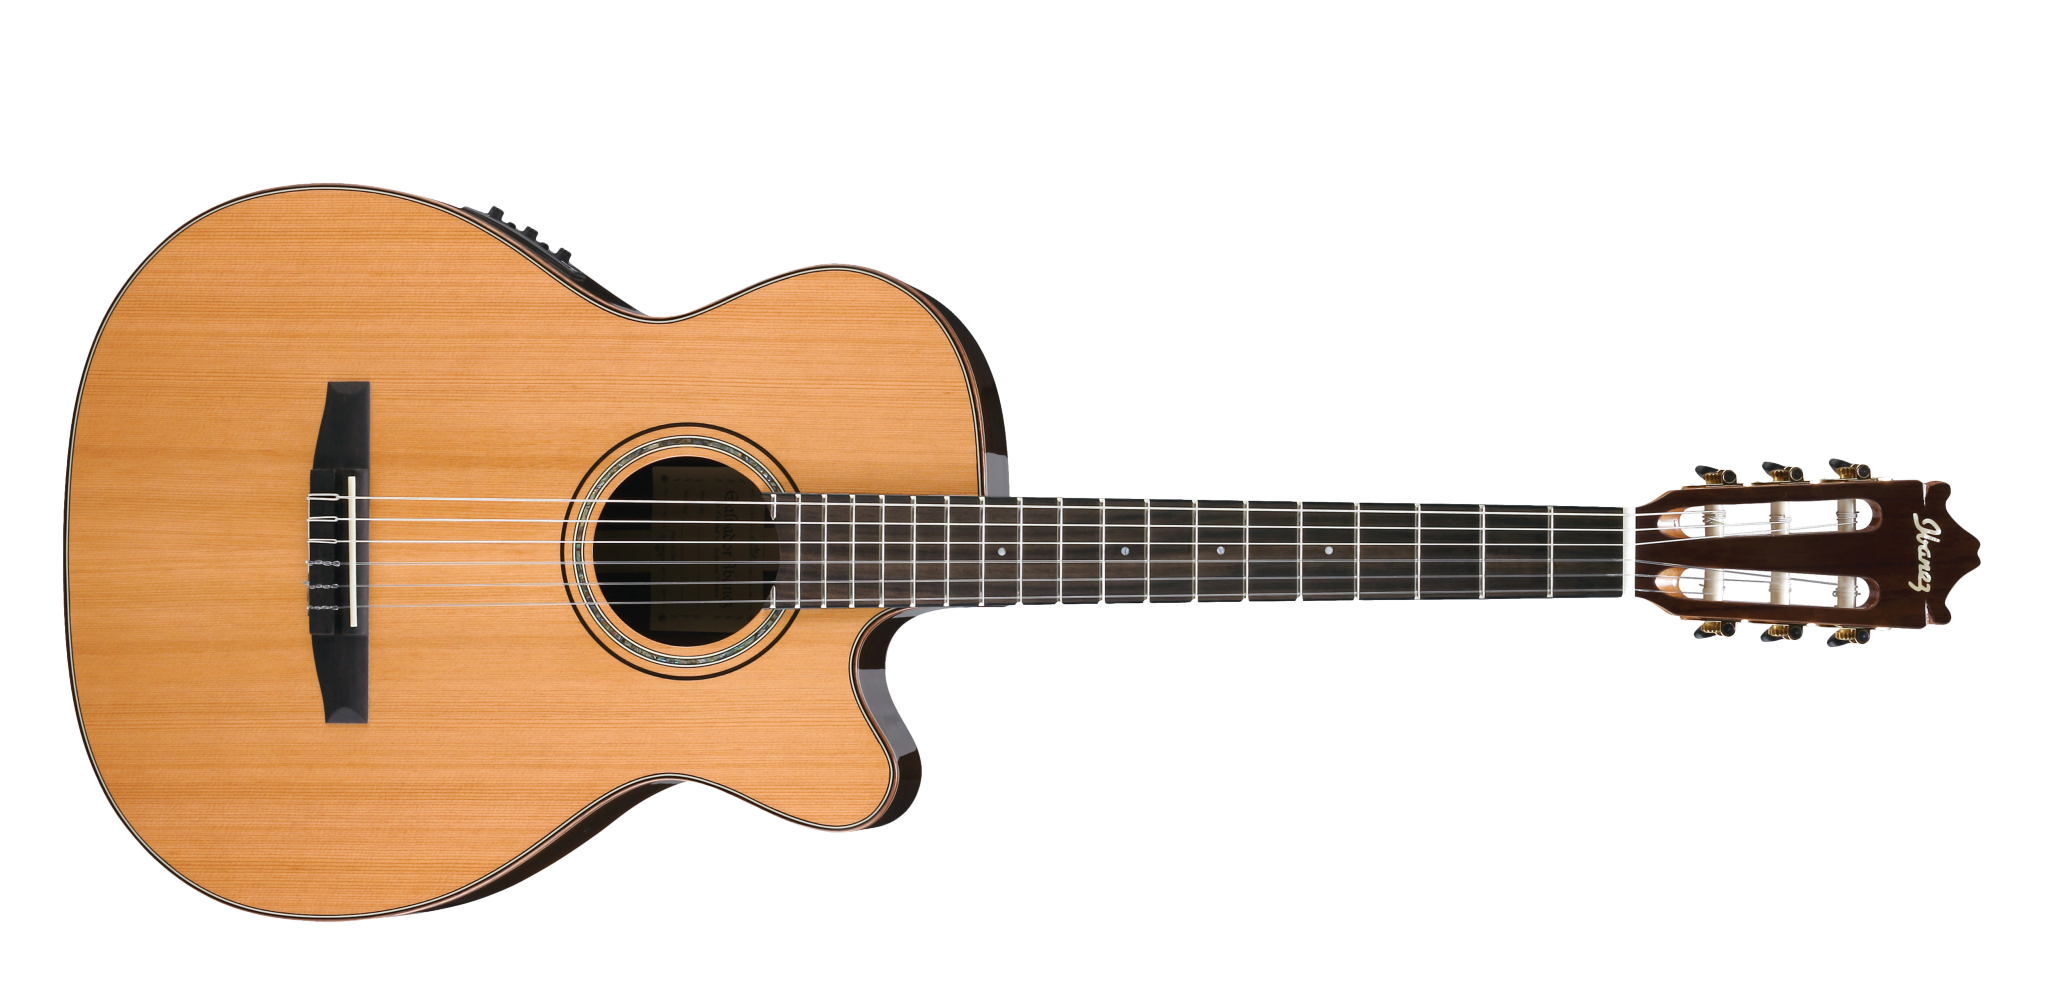 Acoustic Classic Guitar Png Image Classic Guitar Best Acoustic Guitar Guitar